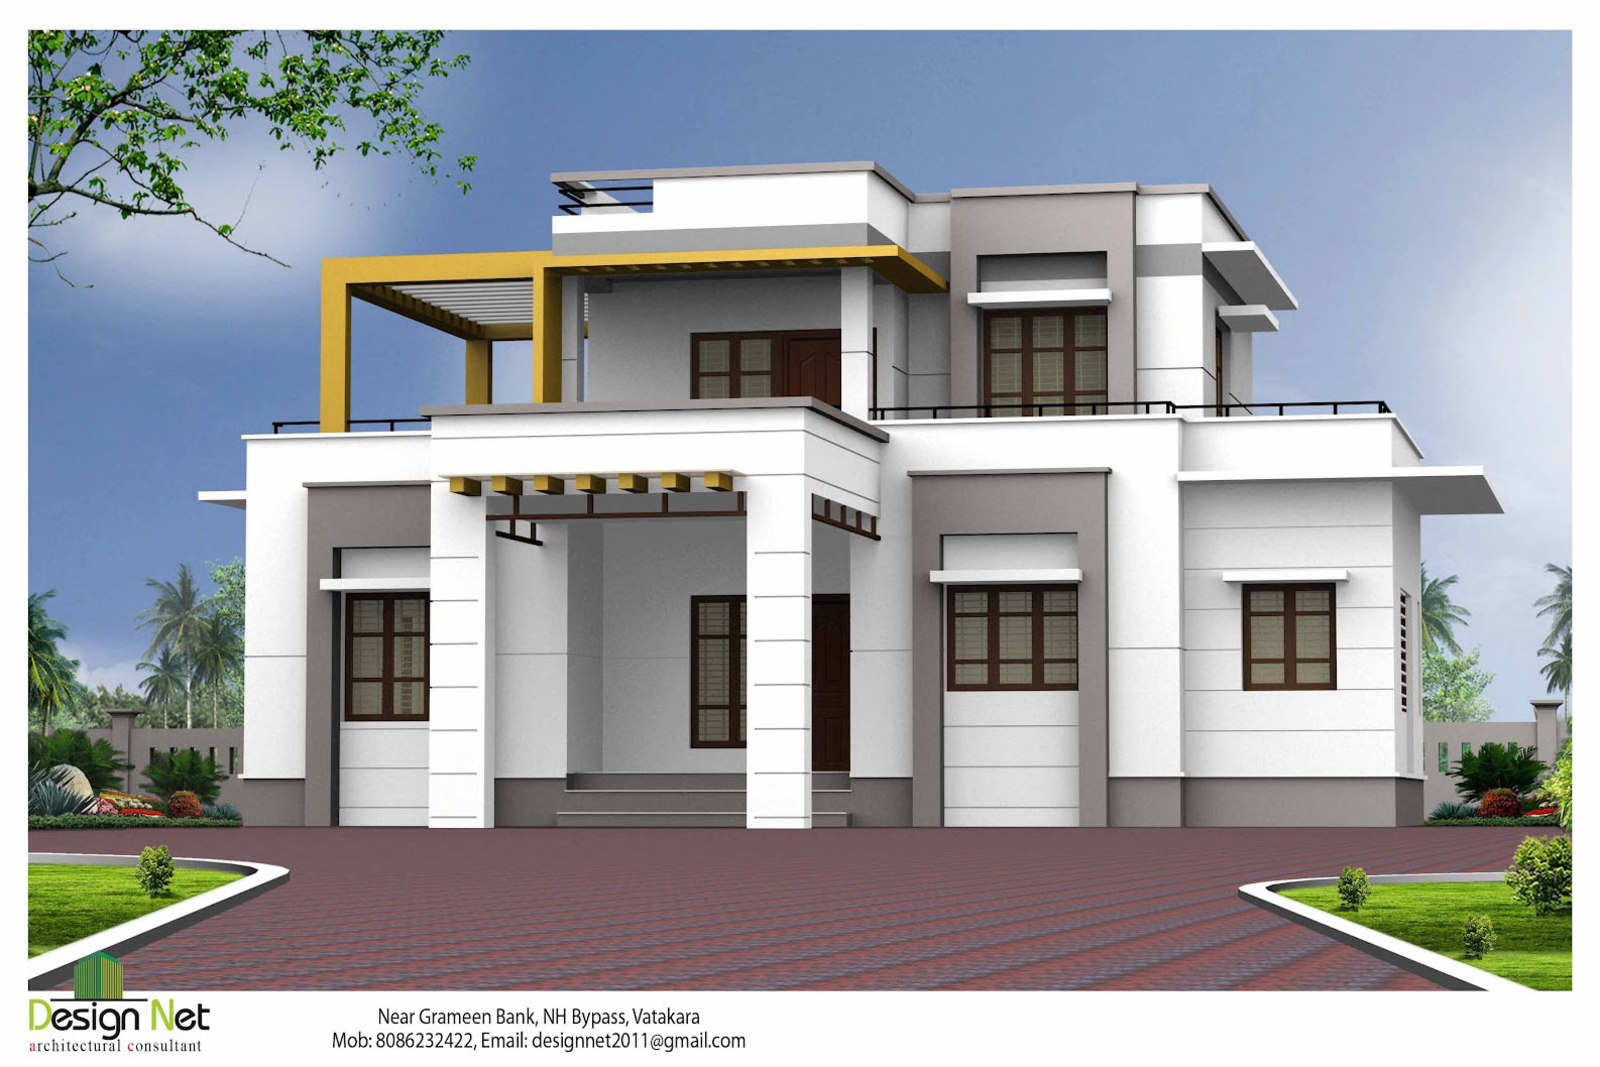 Image gallery outside house designs for Front house ideas